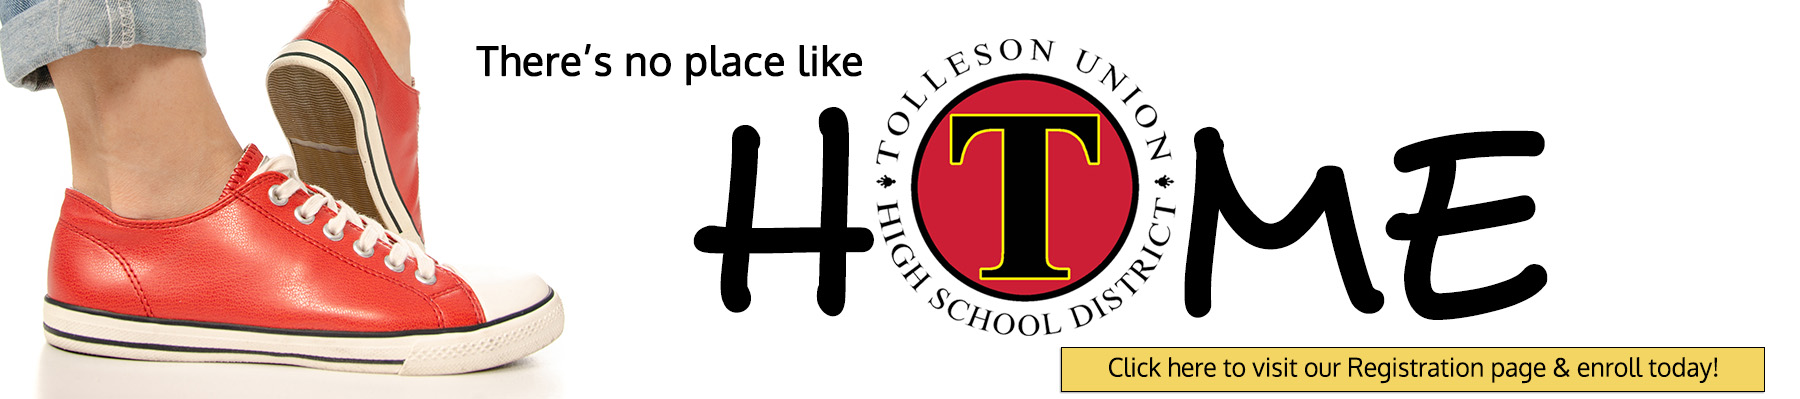 There's no place like home. Tolleson Union High School District - Click here to visit our Registration page and enroll today!